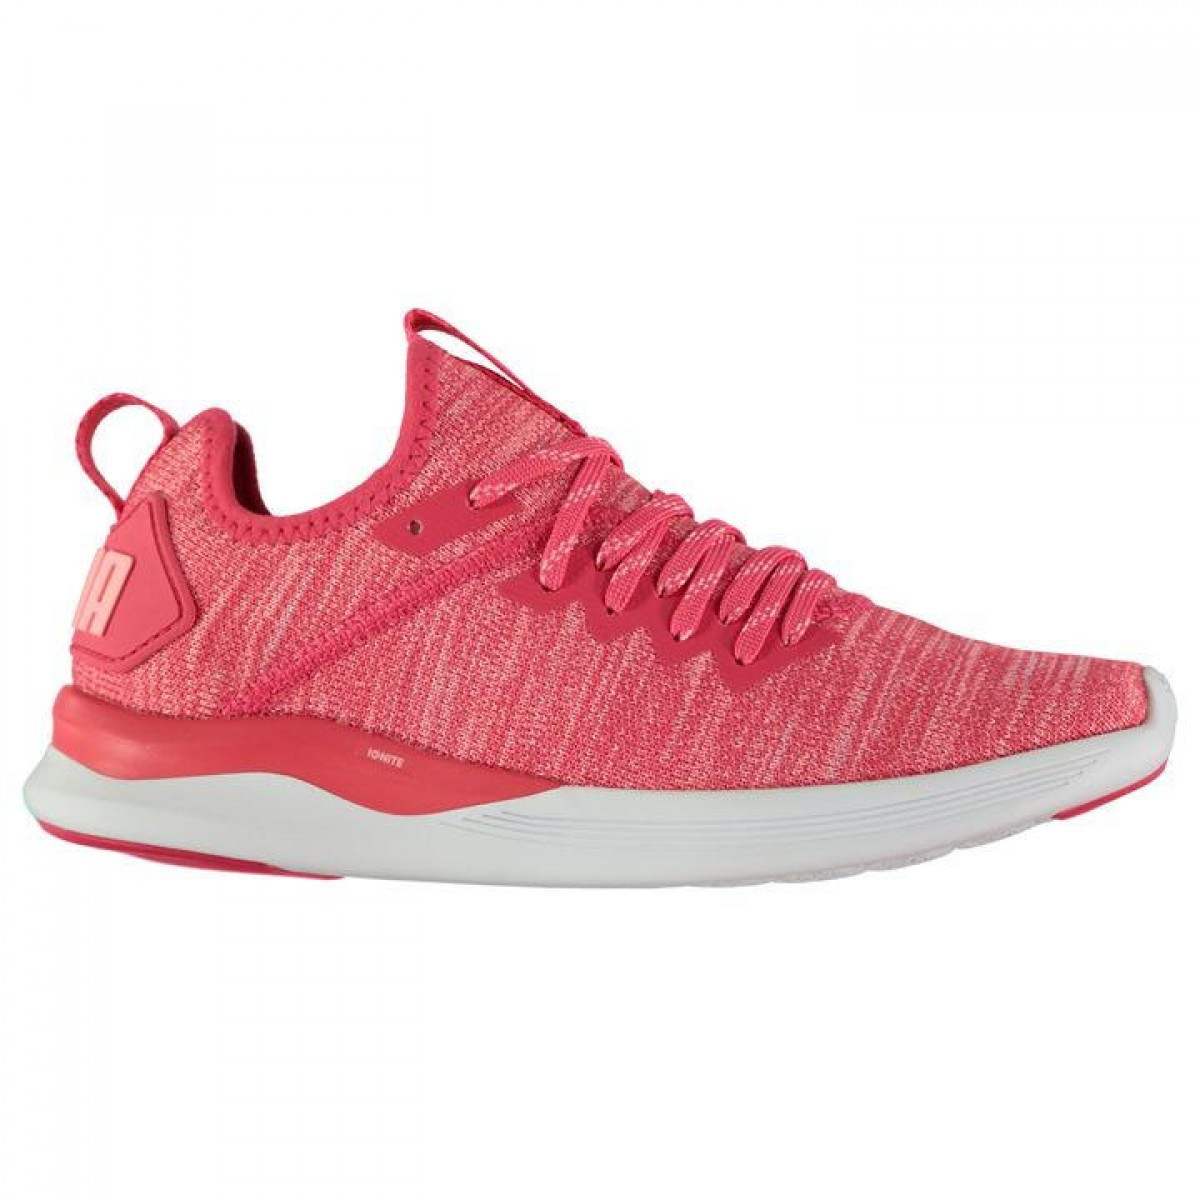 Кроссовки Puma Ignite Flash Ladies Pink - Оригинал, фото 1